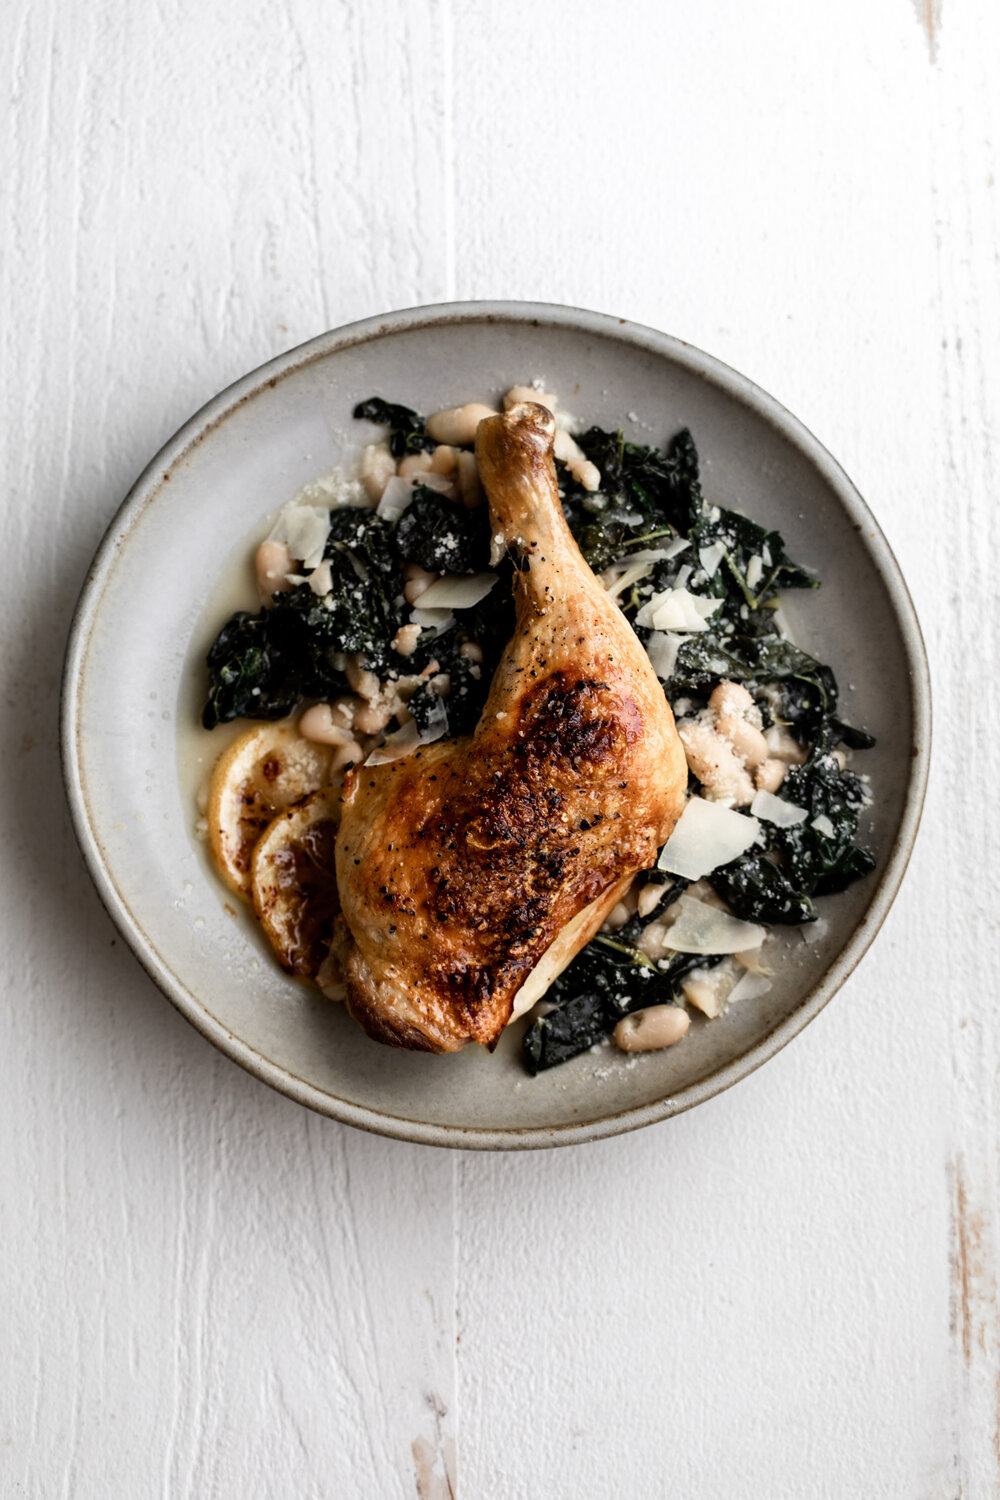 Roast Chicken Legs with Braised Kale and White Beans-26.jpg